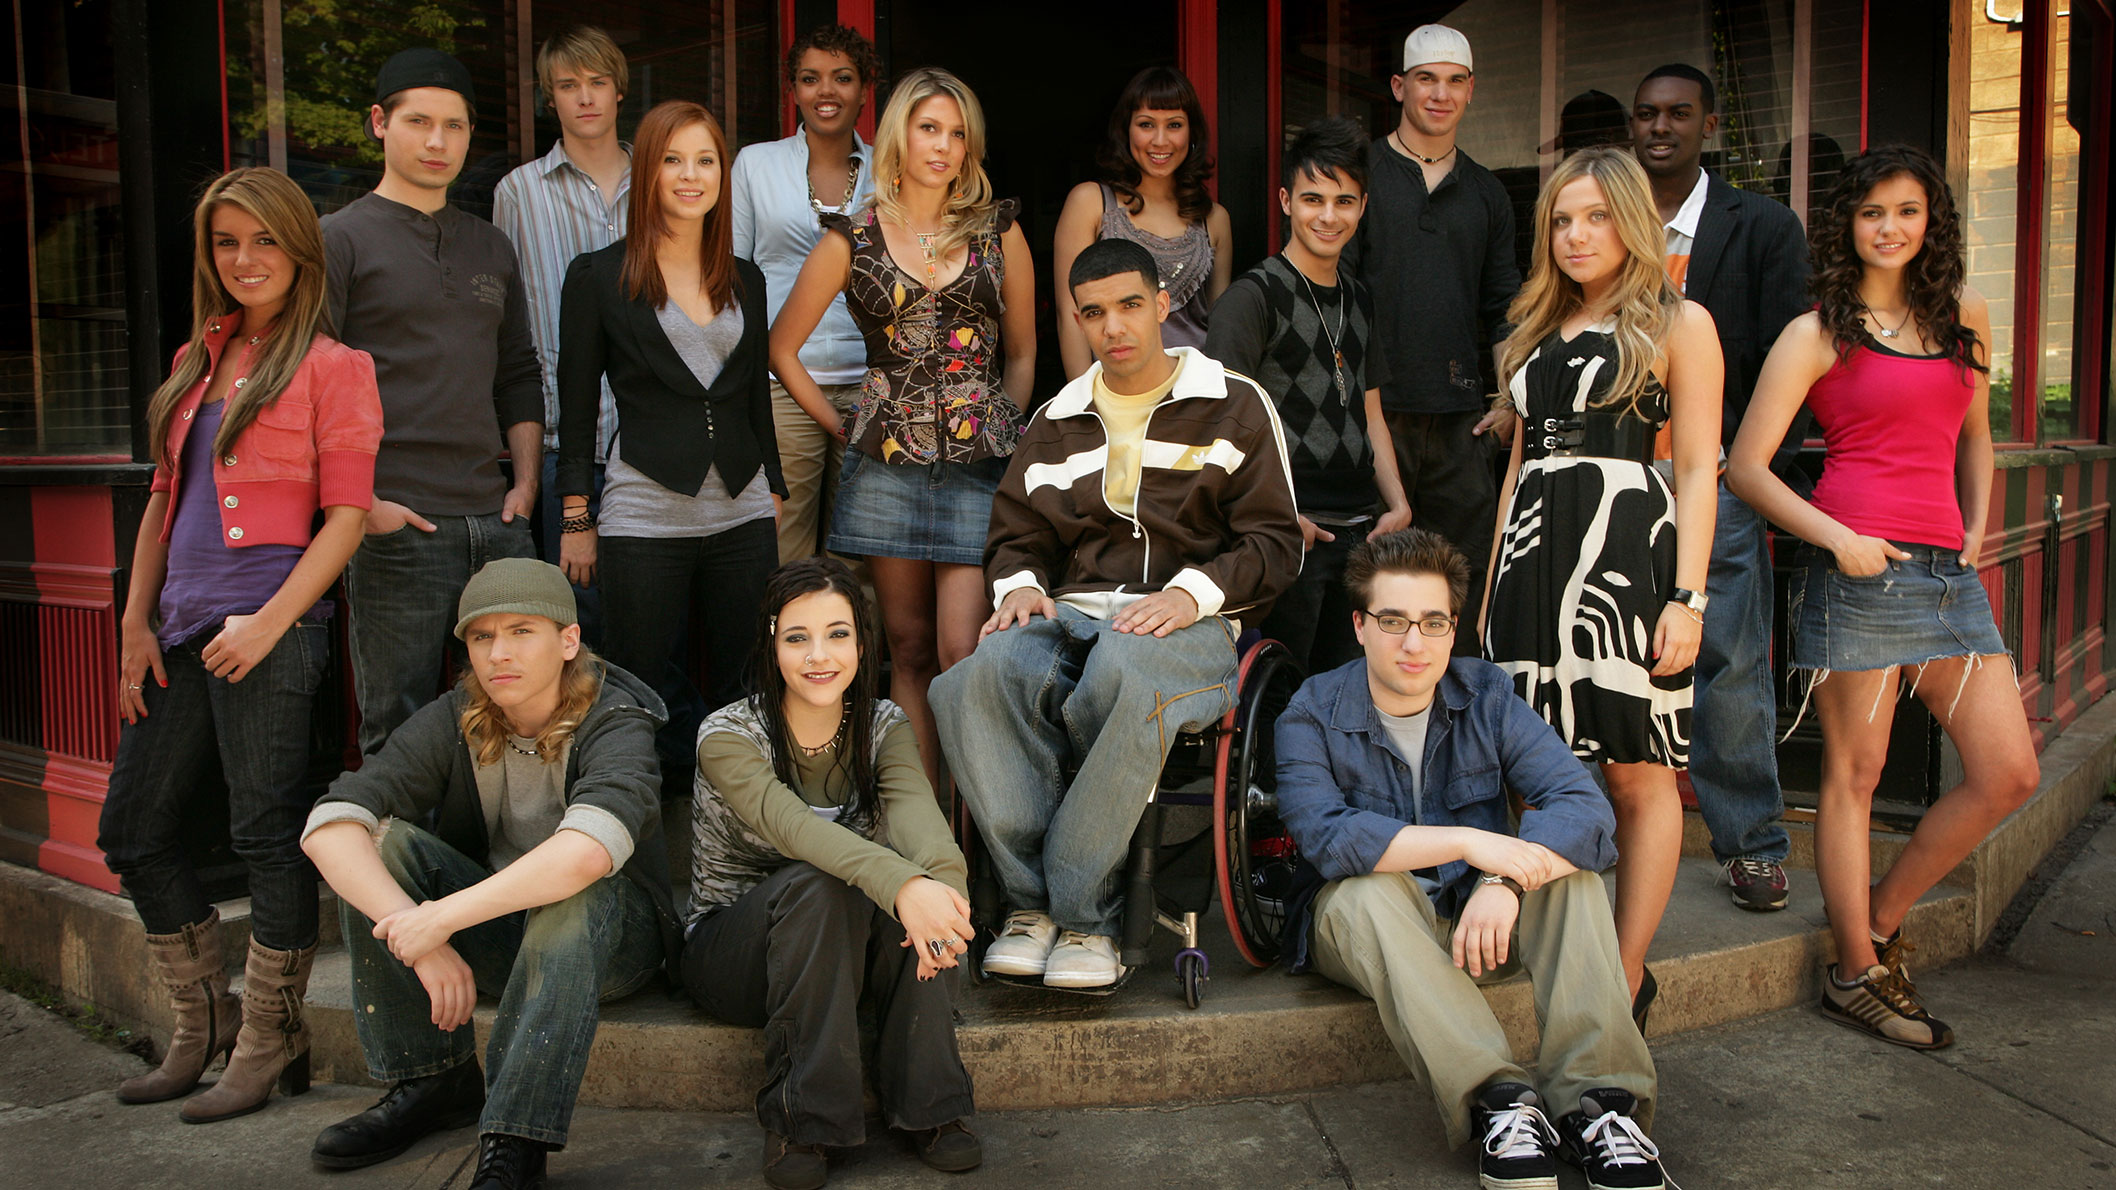 A group shot of the Degrassi: The Next Generation cast.